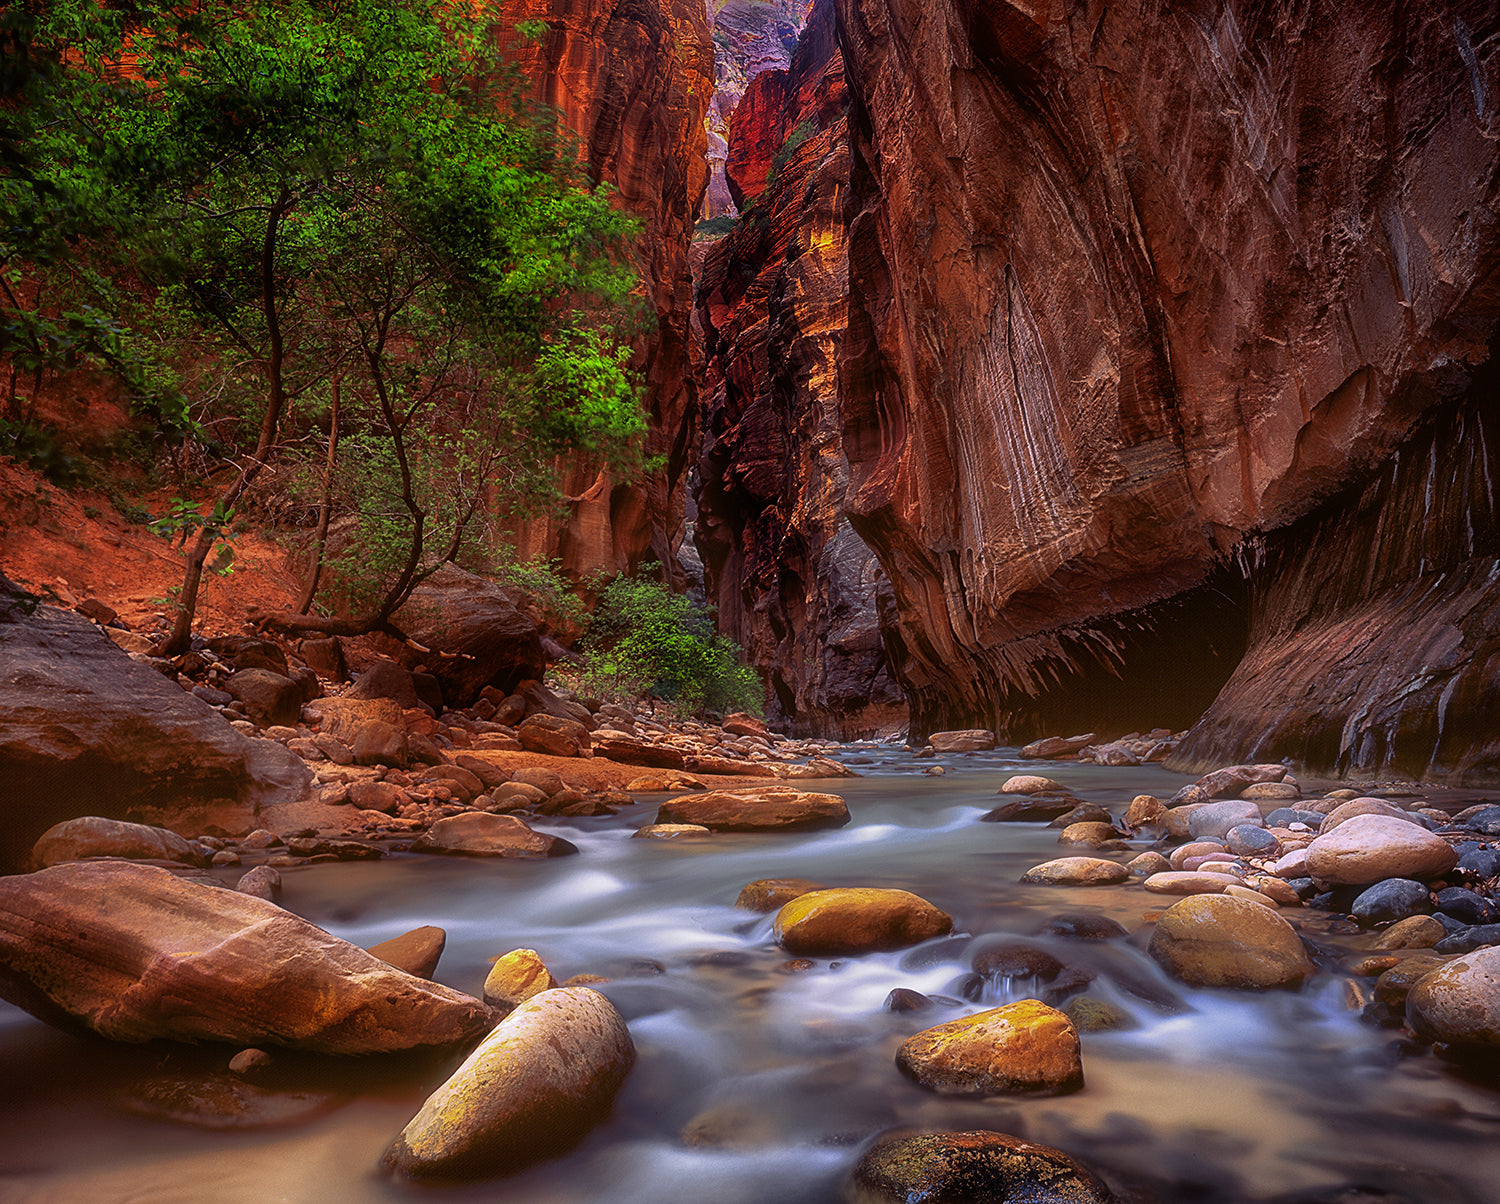 Virgin River - Zion